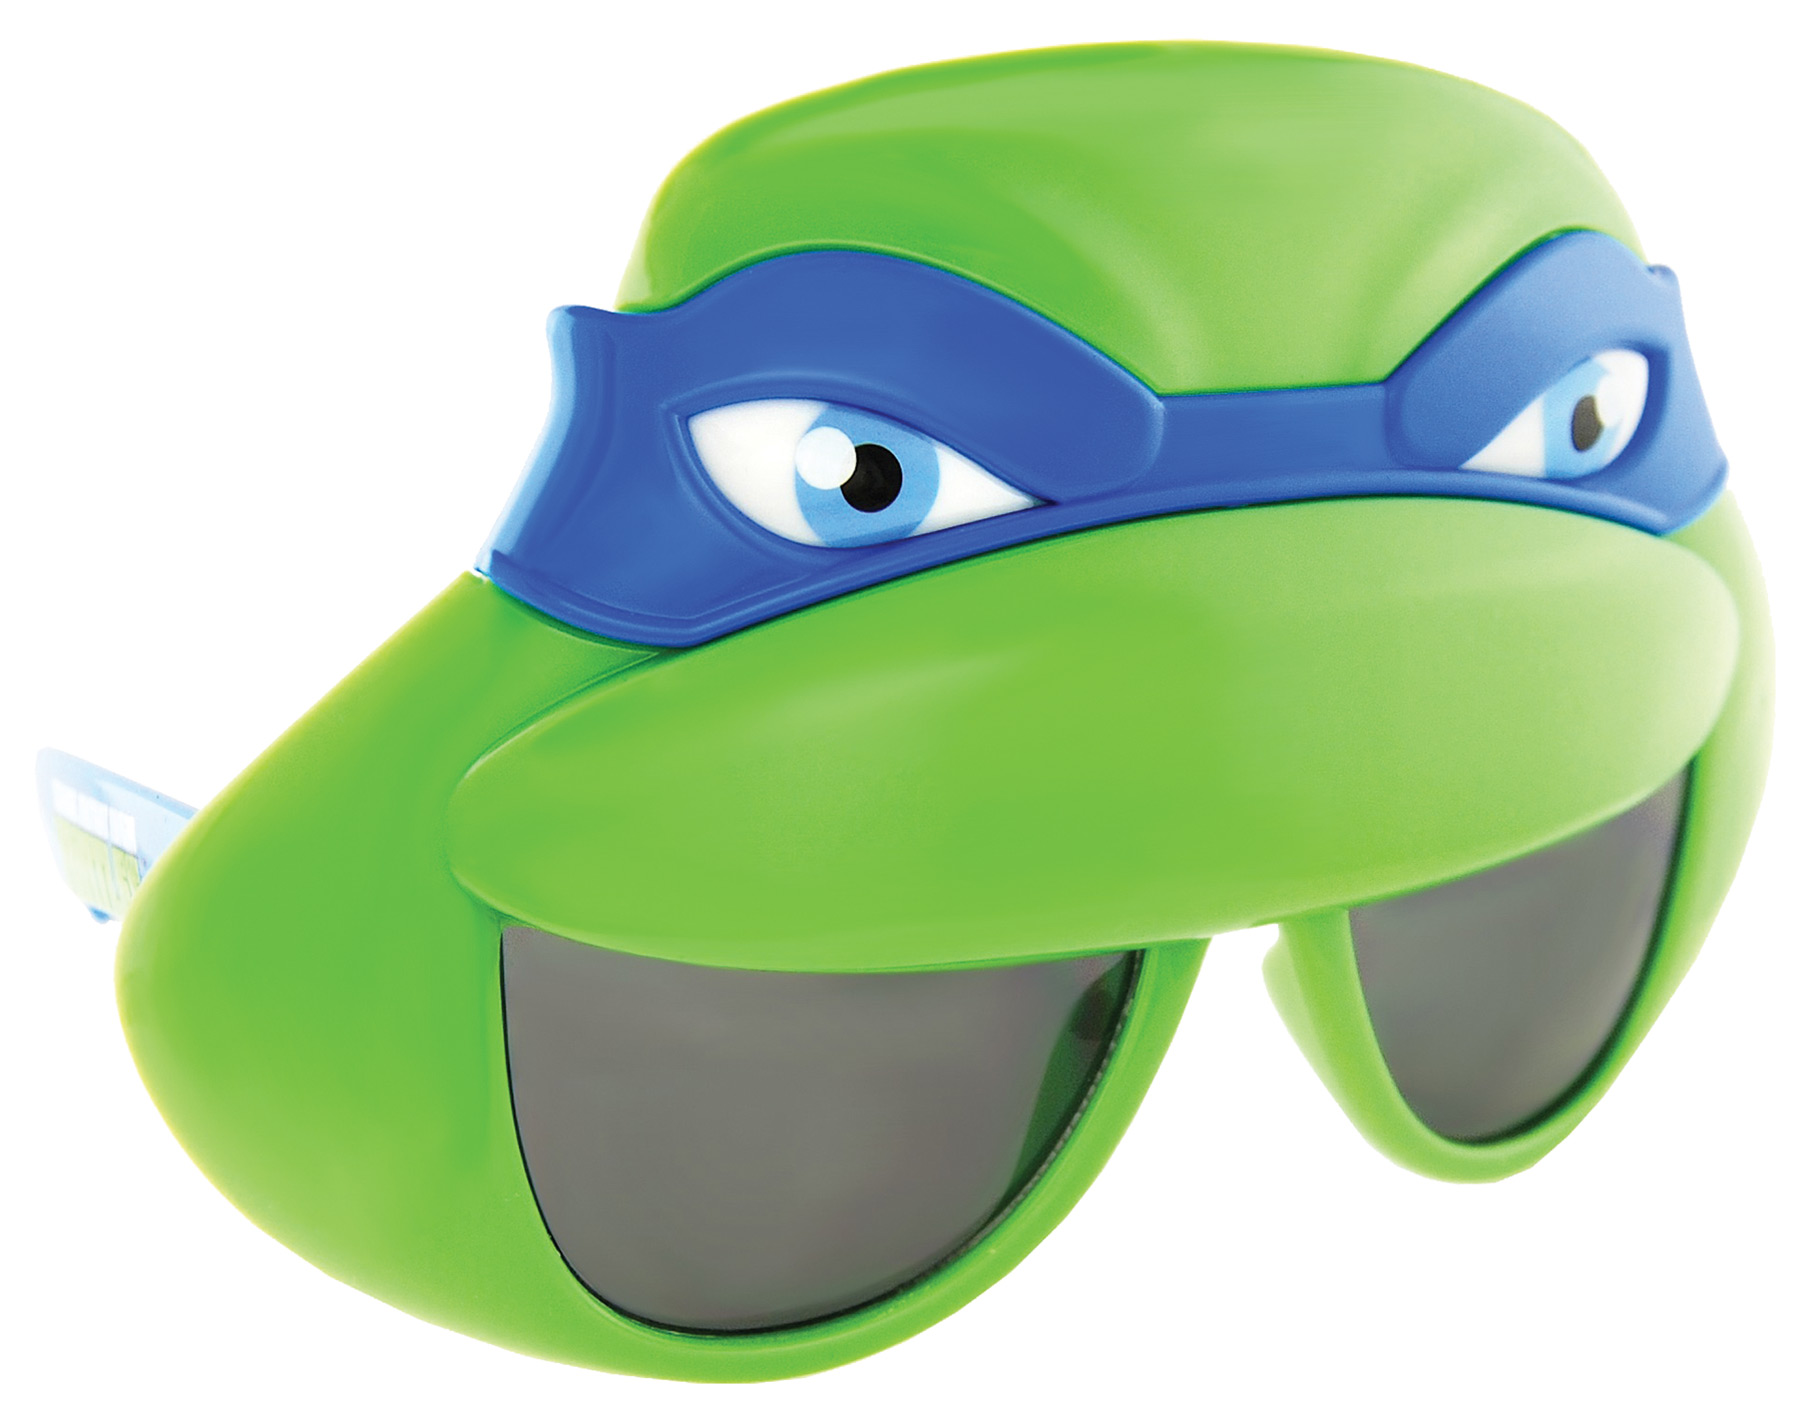 Teenage Mutant Ninja Turtles Leonardo Glasses Costumepub Com